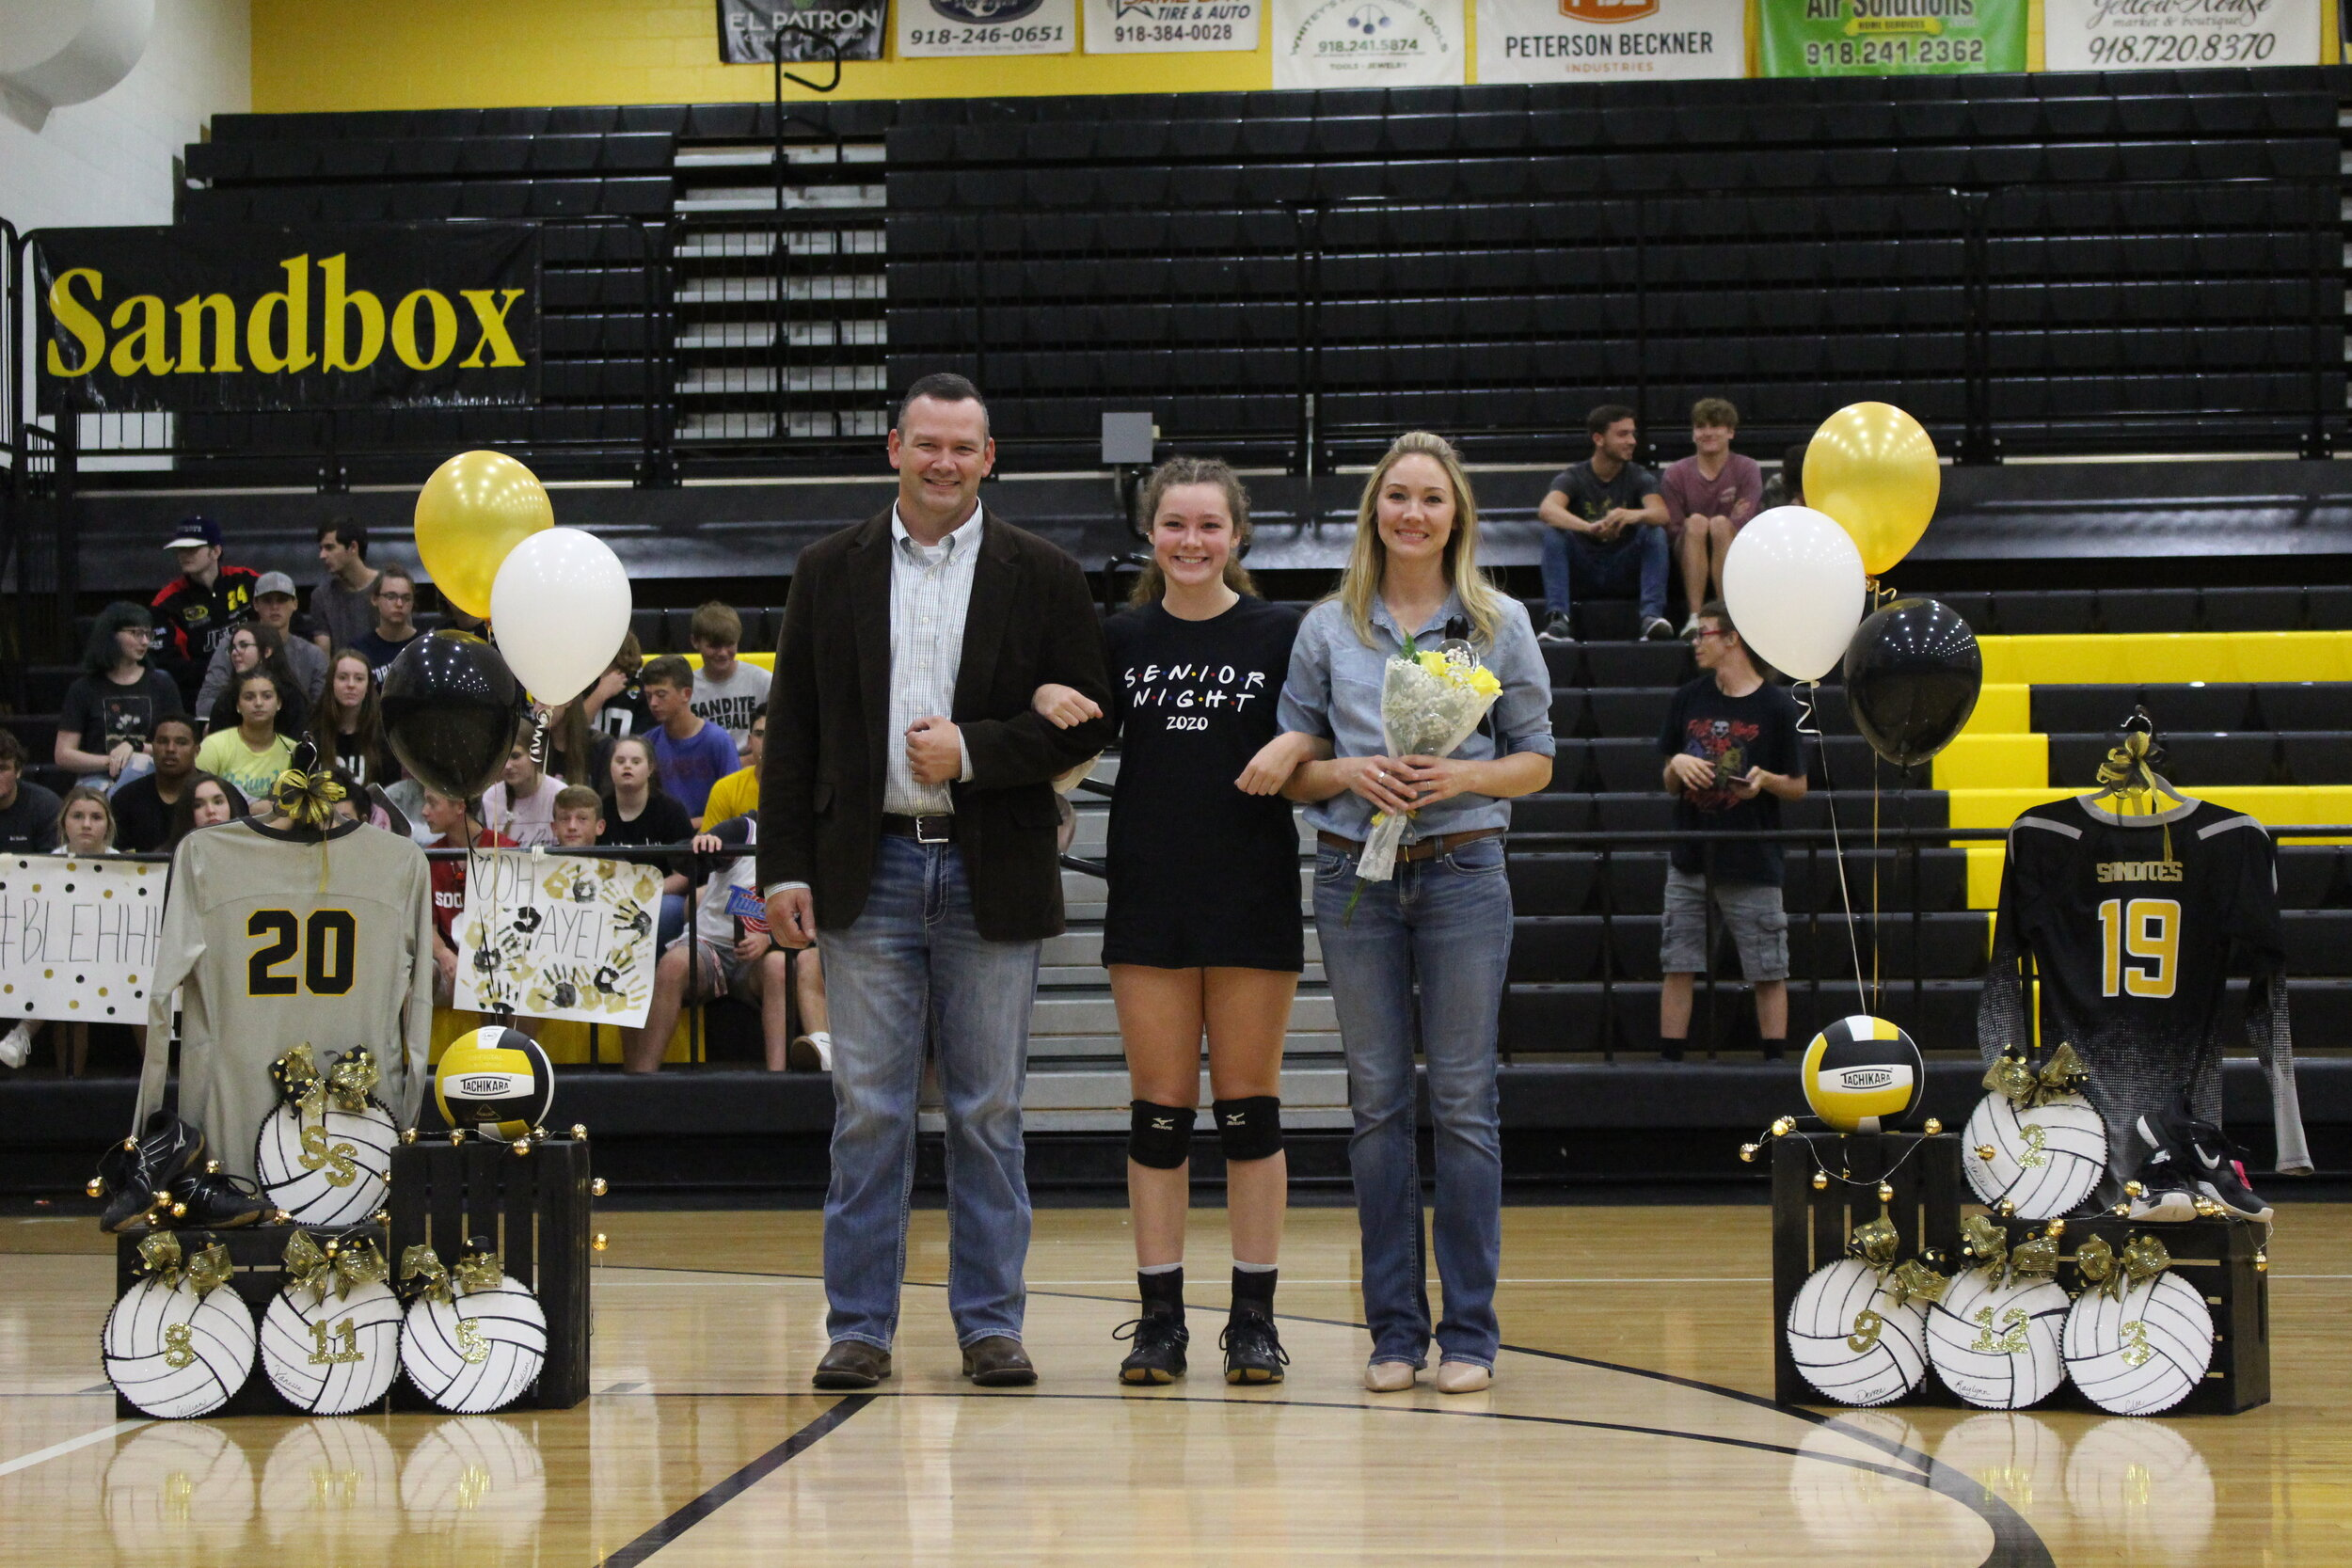 """Makenzie Harris (RSH) escorted by parents Brad and Sarah Harris. She is a 6-year Sandite Volleyball player who also plays basketball. She plans on attending the University of Arkansas.  """"Thank you to my teammates and my 6 girls who have stuck with me through every season's ups and downs. Thank you to my family for always supporting me throughout every season's highs and lows. I love you all so much.""""  Harris left the following words for her underclass teammates. """"Don't let anything get between you guys, you really do become like sisters throughout your years together. You guys are going to bicker and argue, but just brush it off and stick together!"""""""